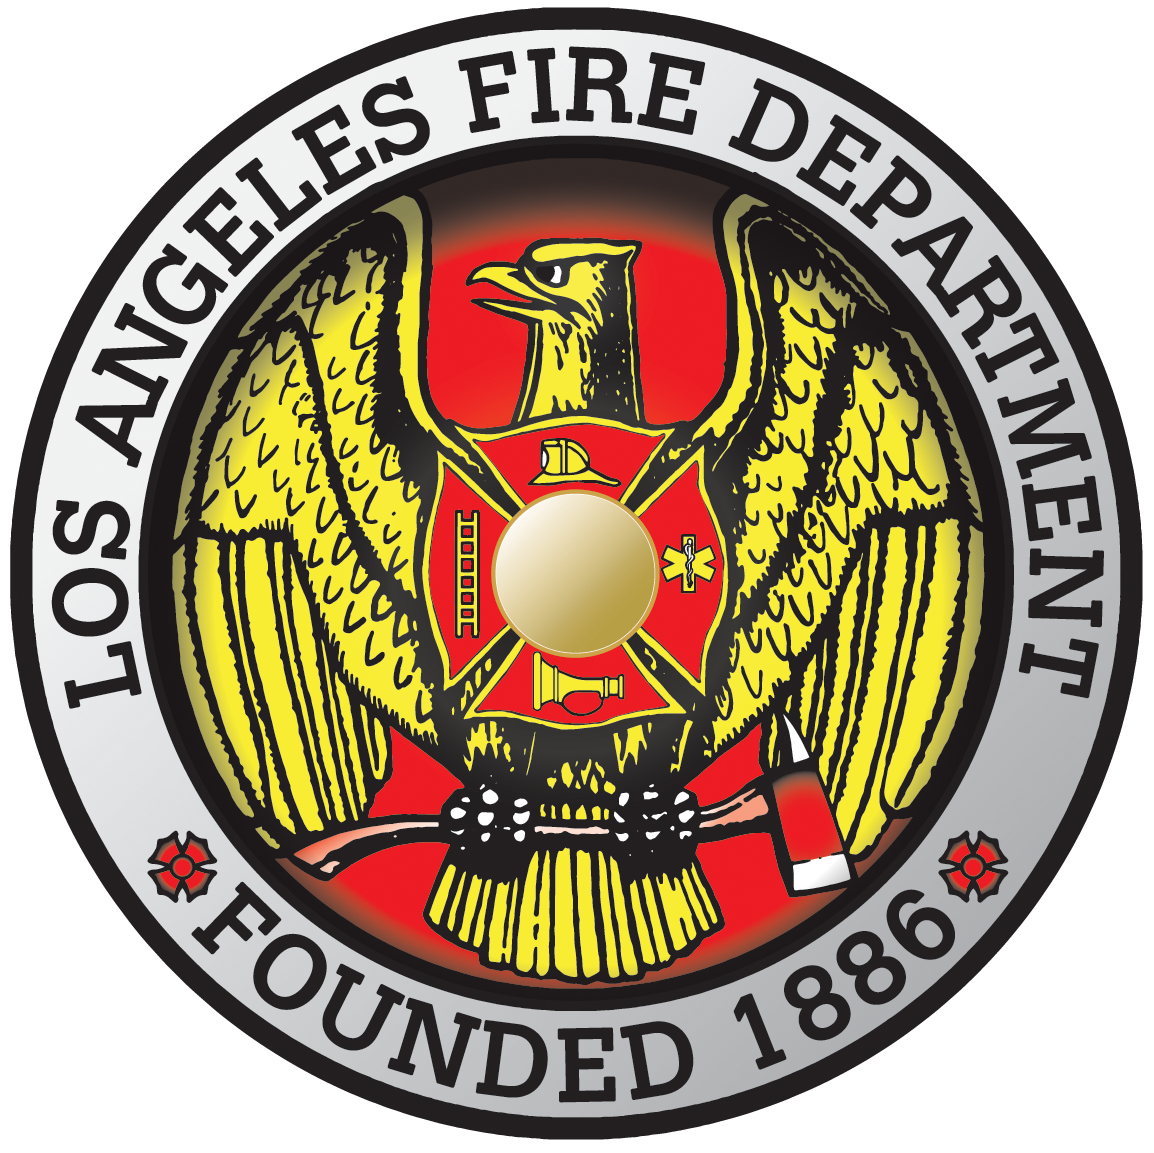 LAFD_Seal_4in.png